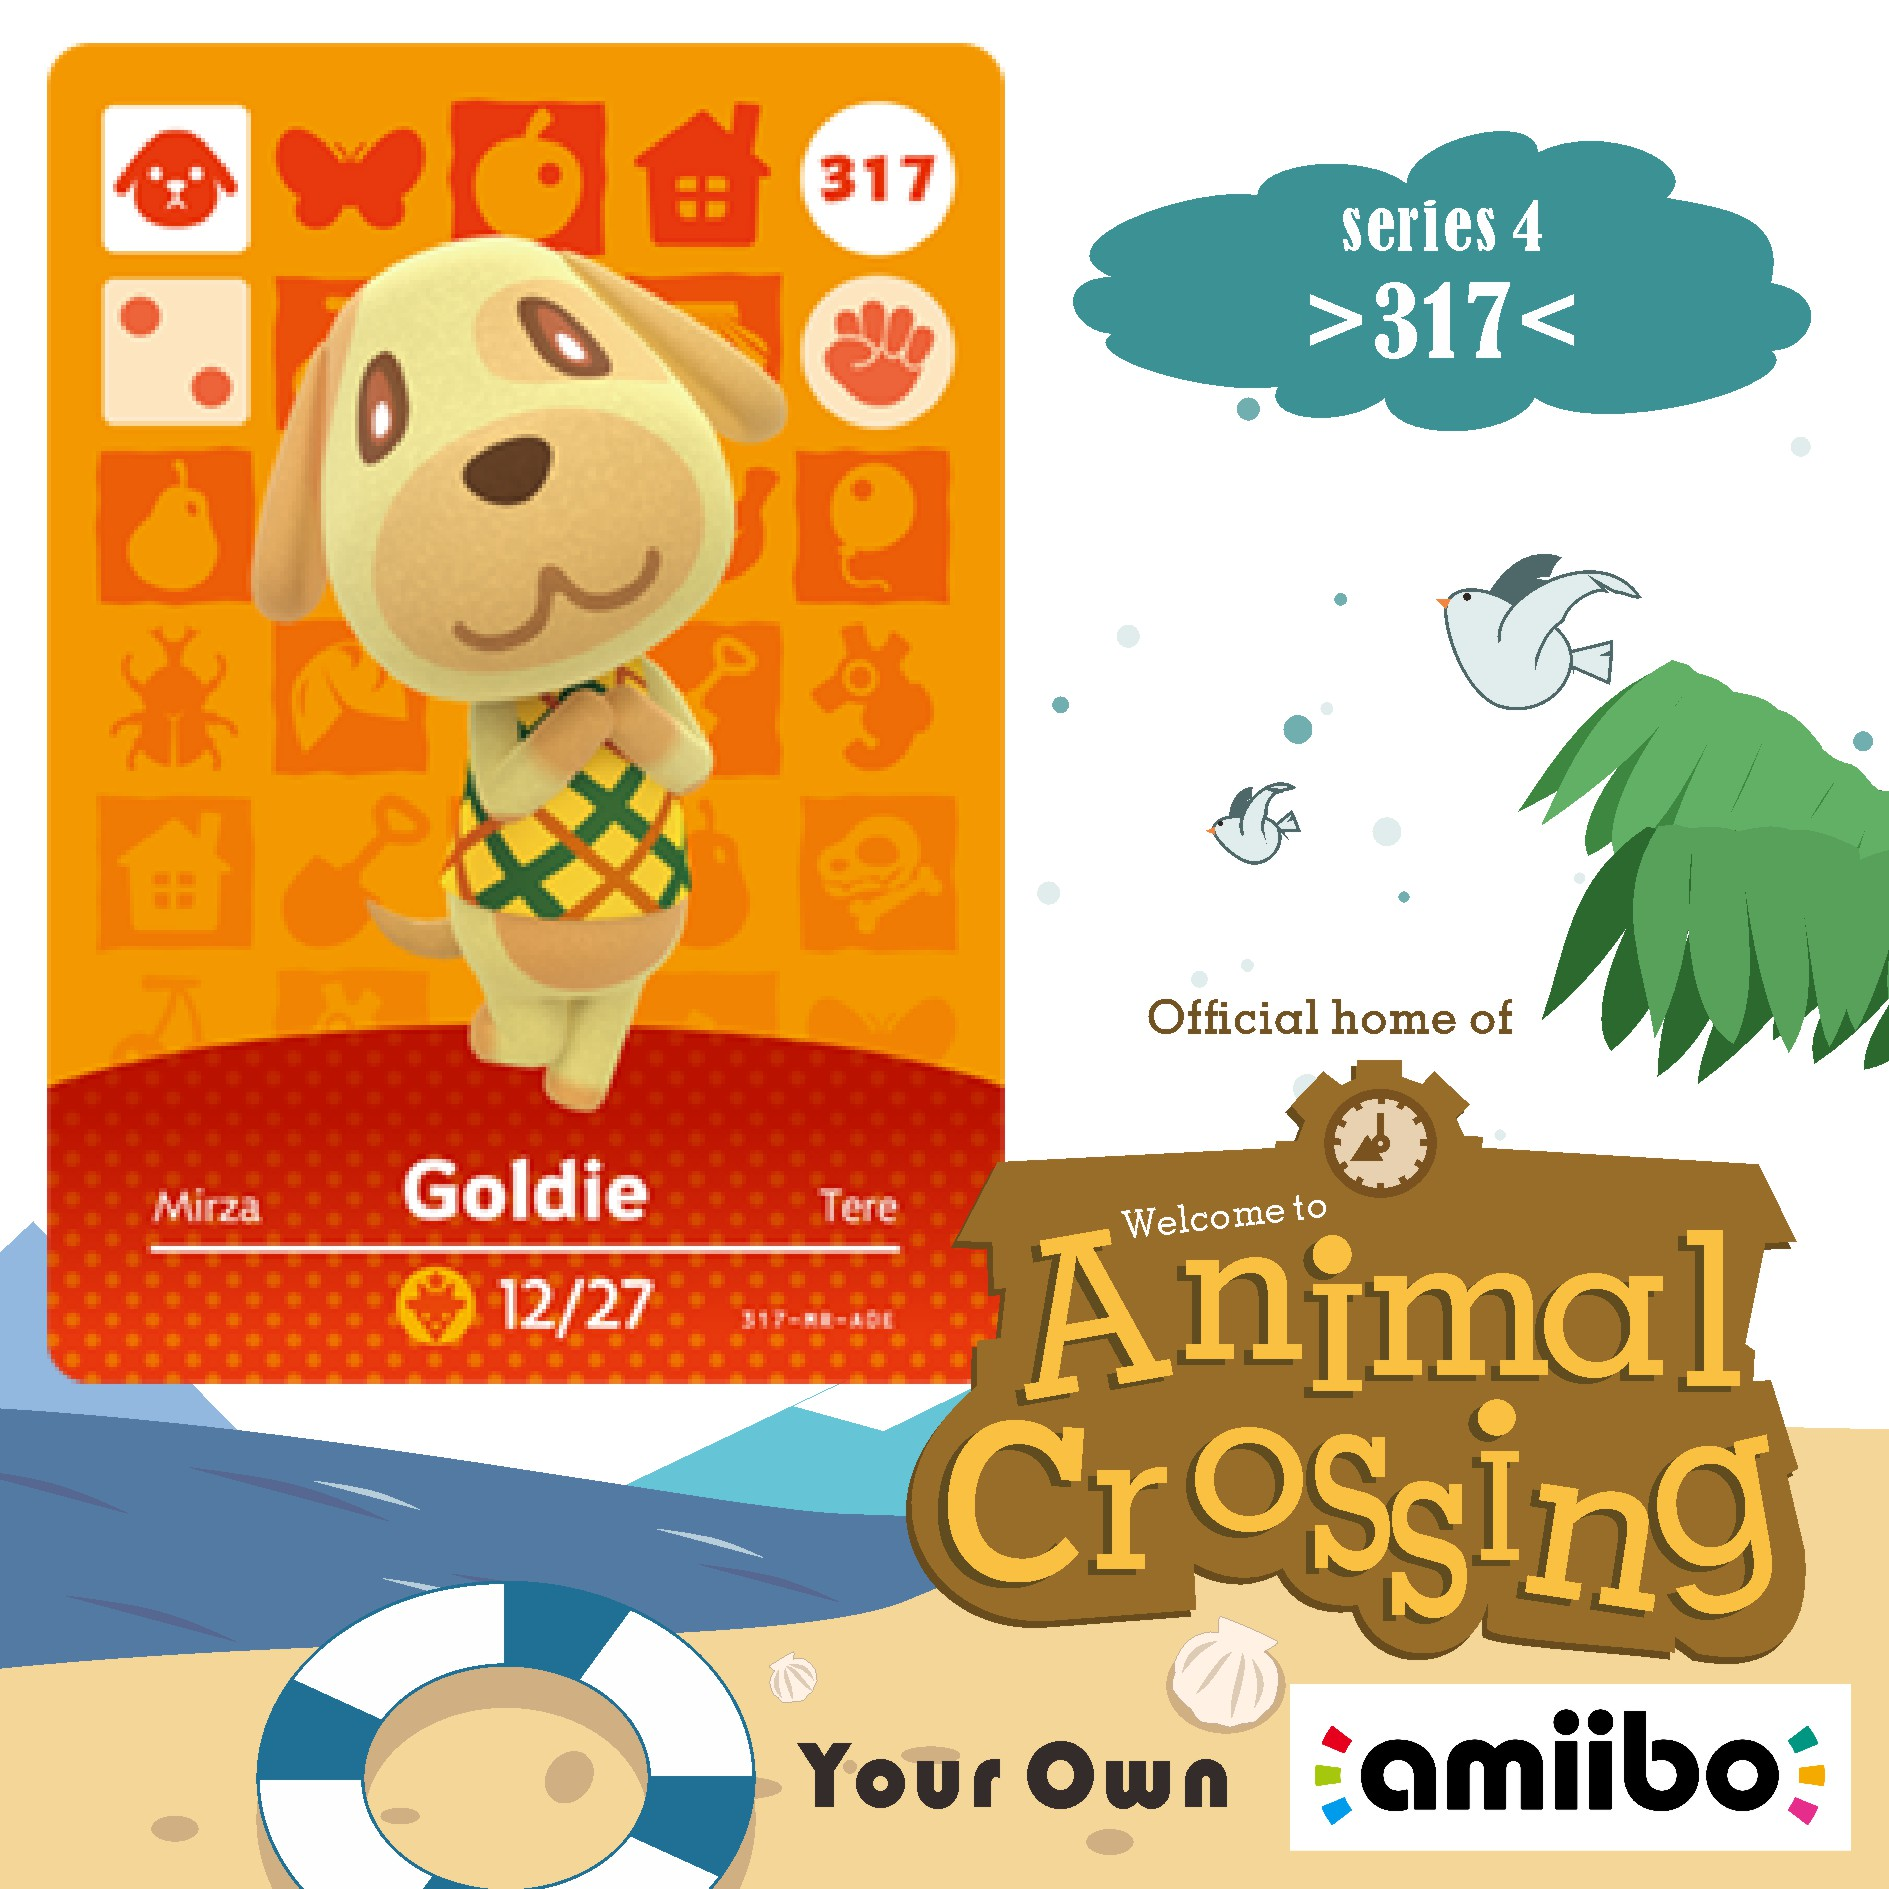 Amiibo Animal Crossing 317 Animal Crossing Amiibo Card Goldie Amiibo Goldie Cross Game Villager Card Series 4 317  Goldie